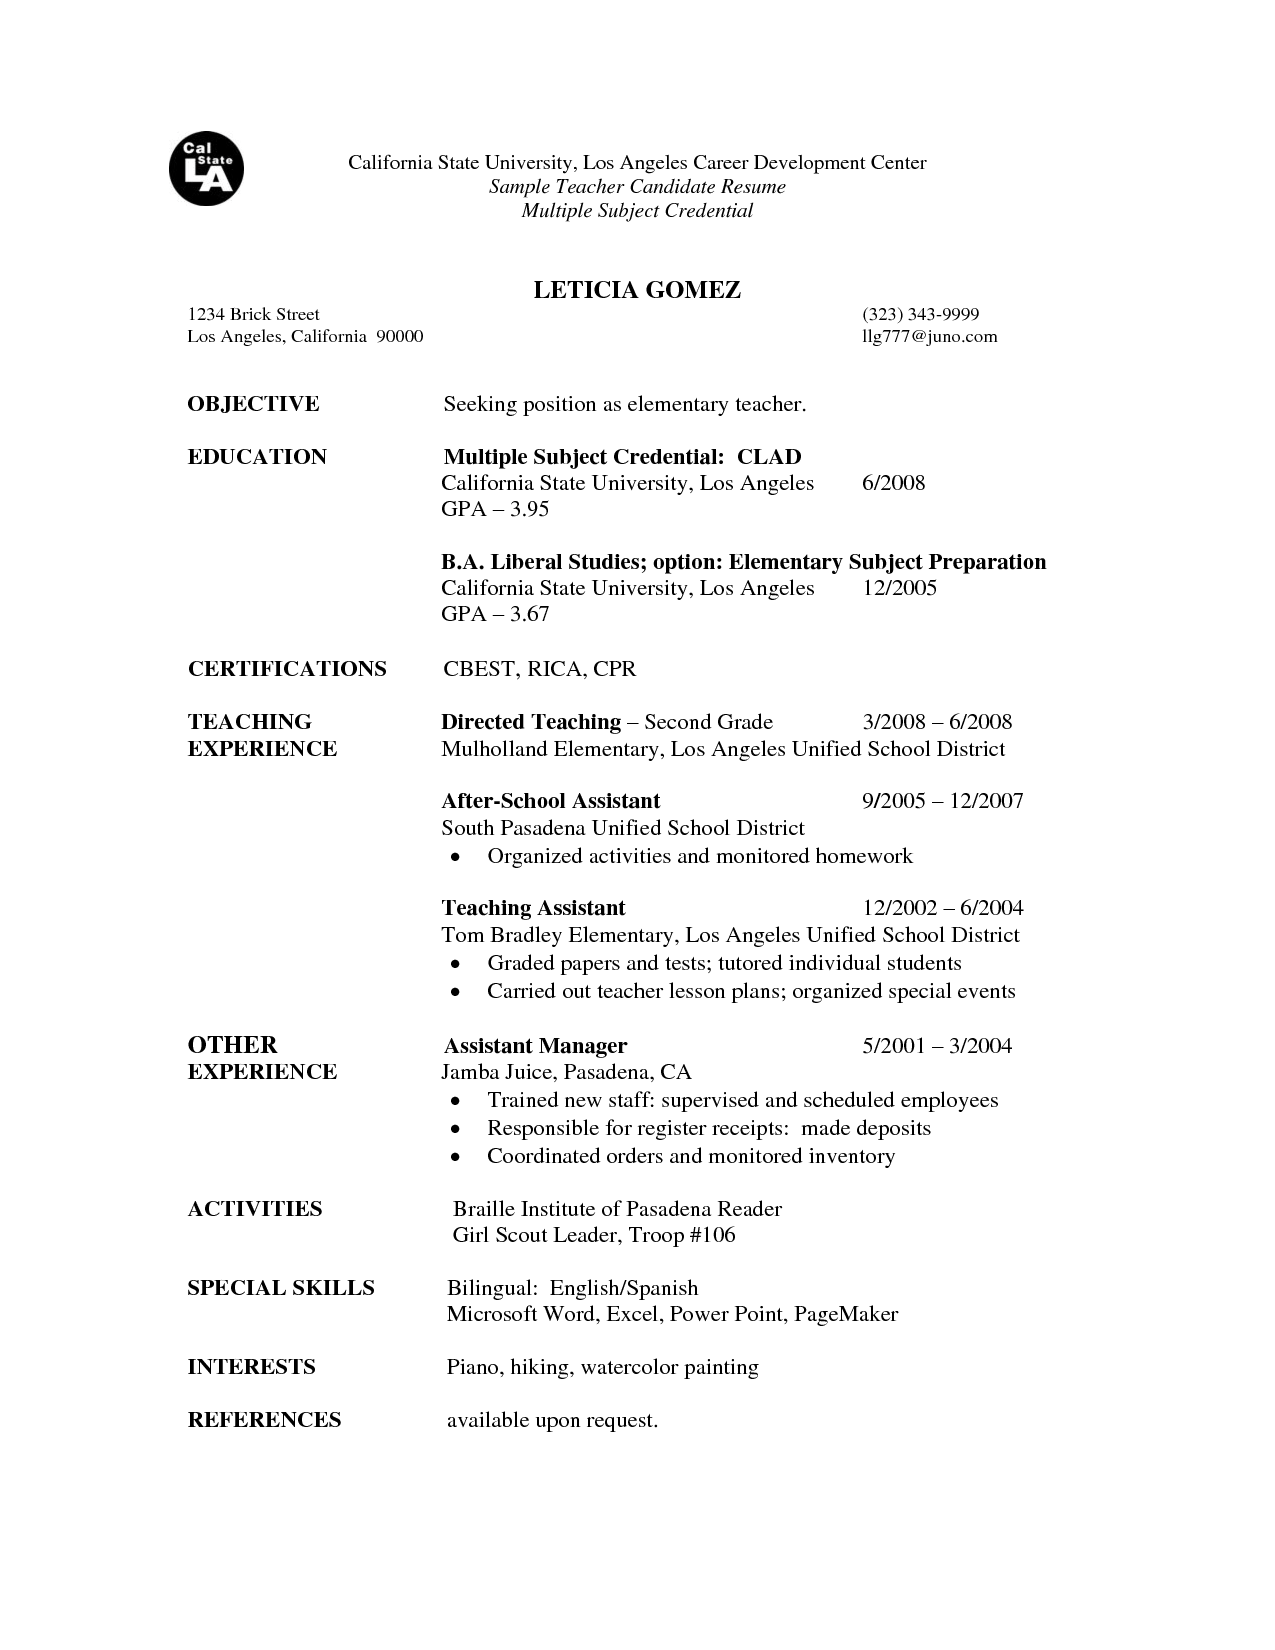 Resume Education Example Endearing Image Result For First Resume For Teacher  Resume  Pinterest Design Inspiration